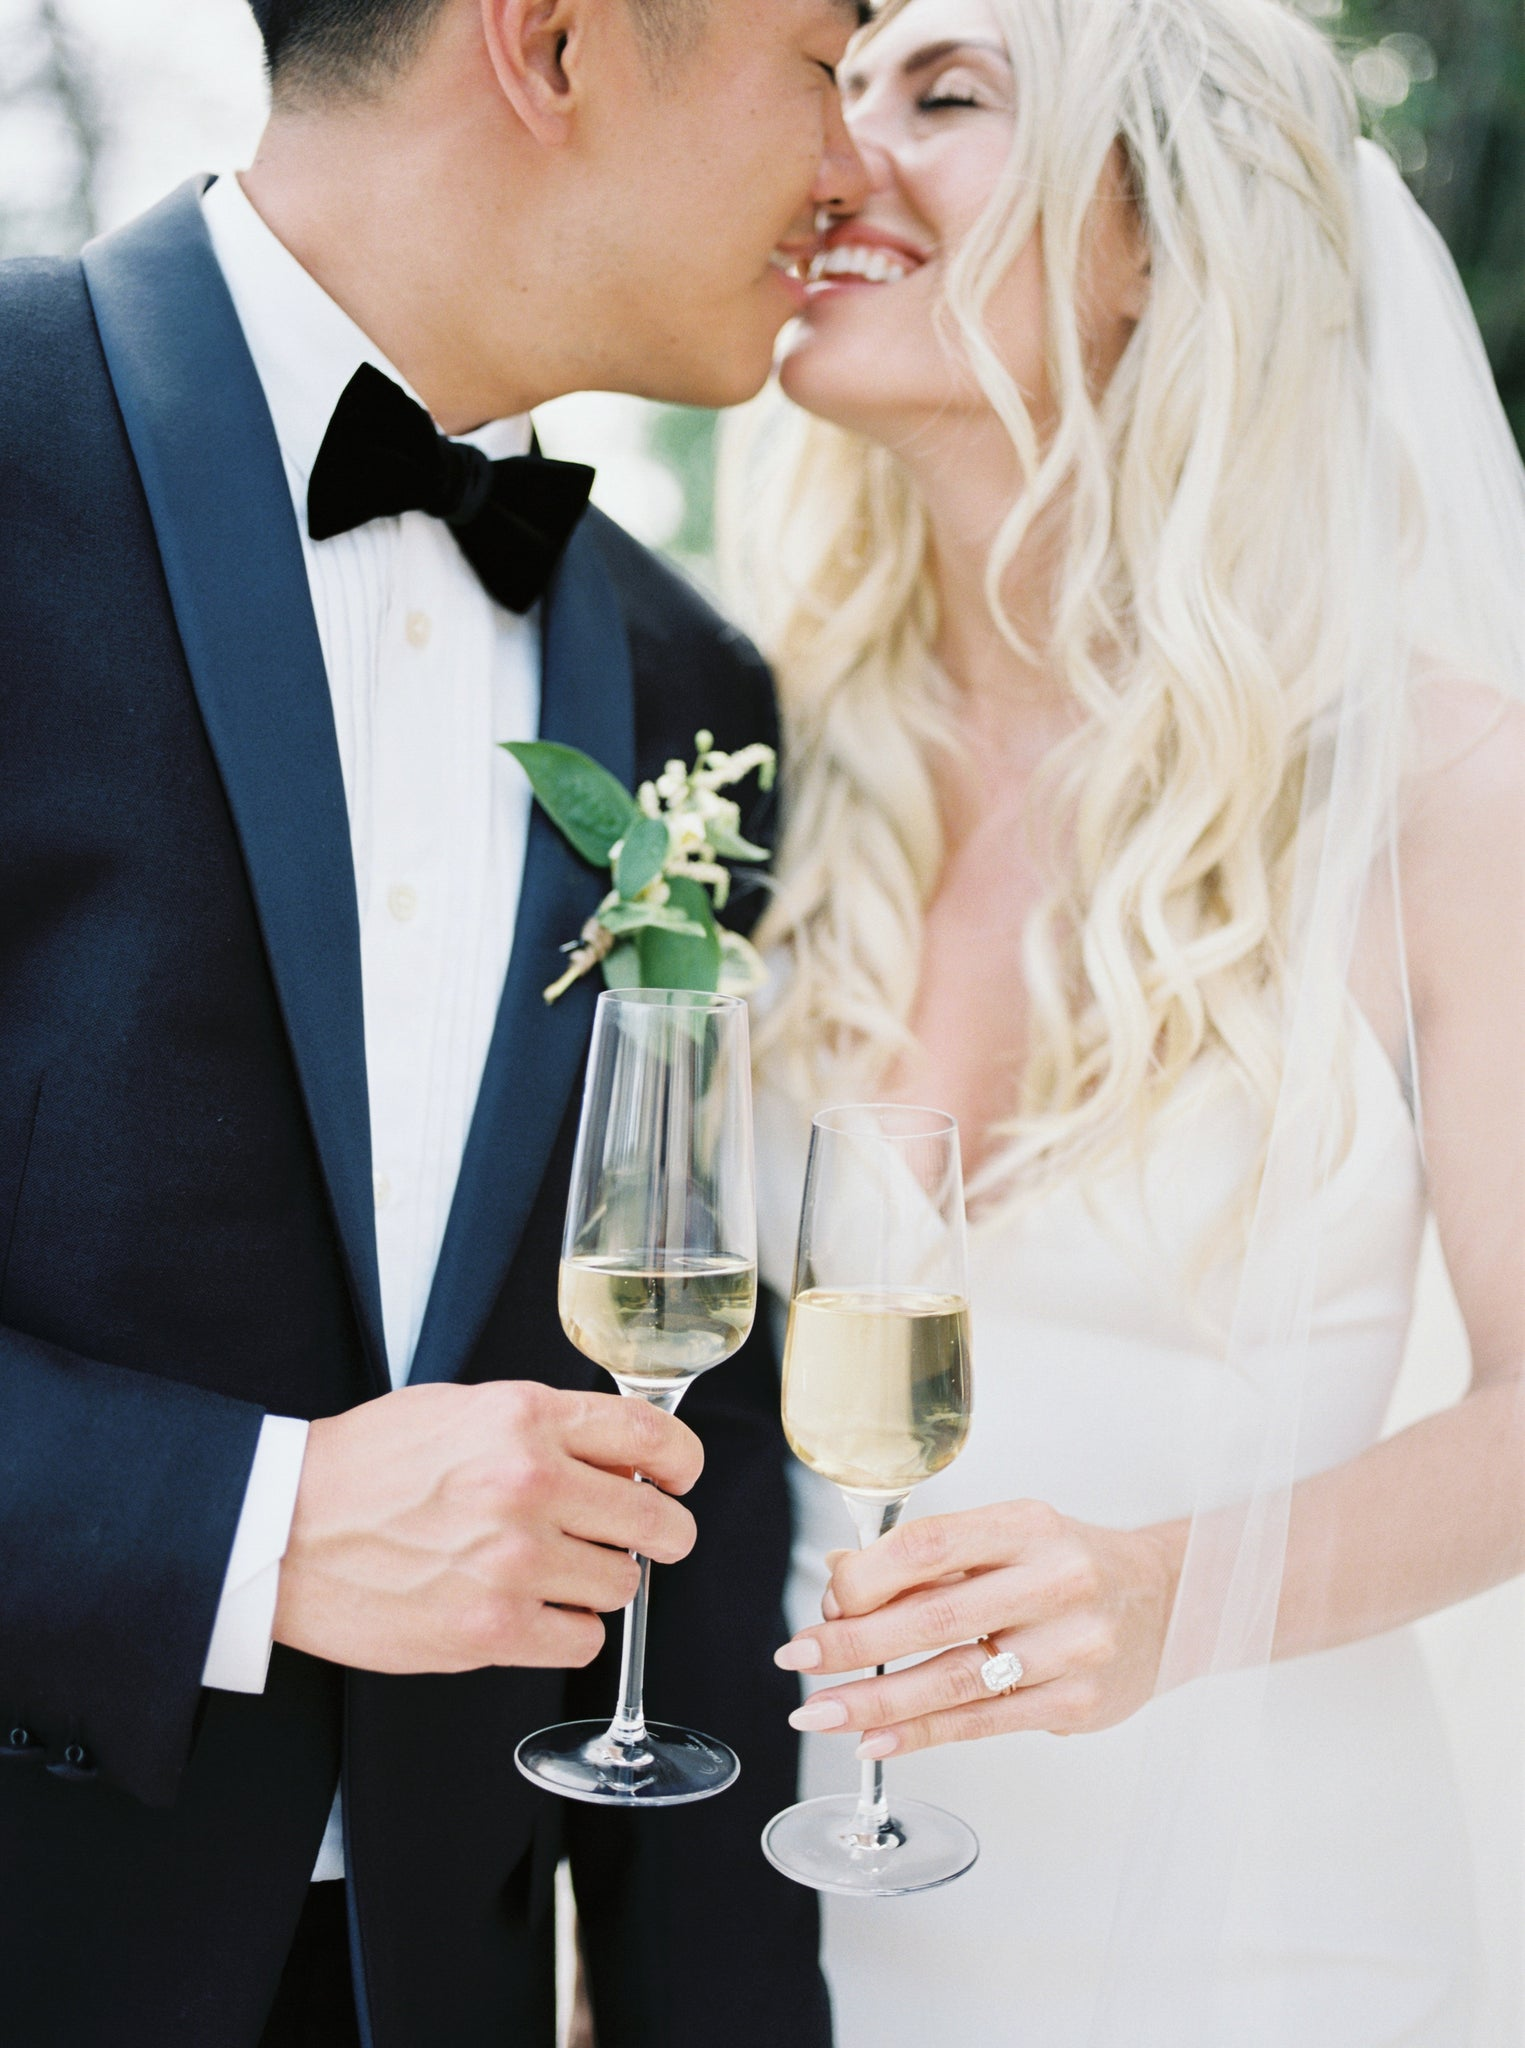 Katie Dean Jewelry romantic destination wedding at a chateau, Provence, France, bride and groom